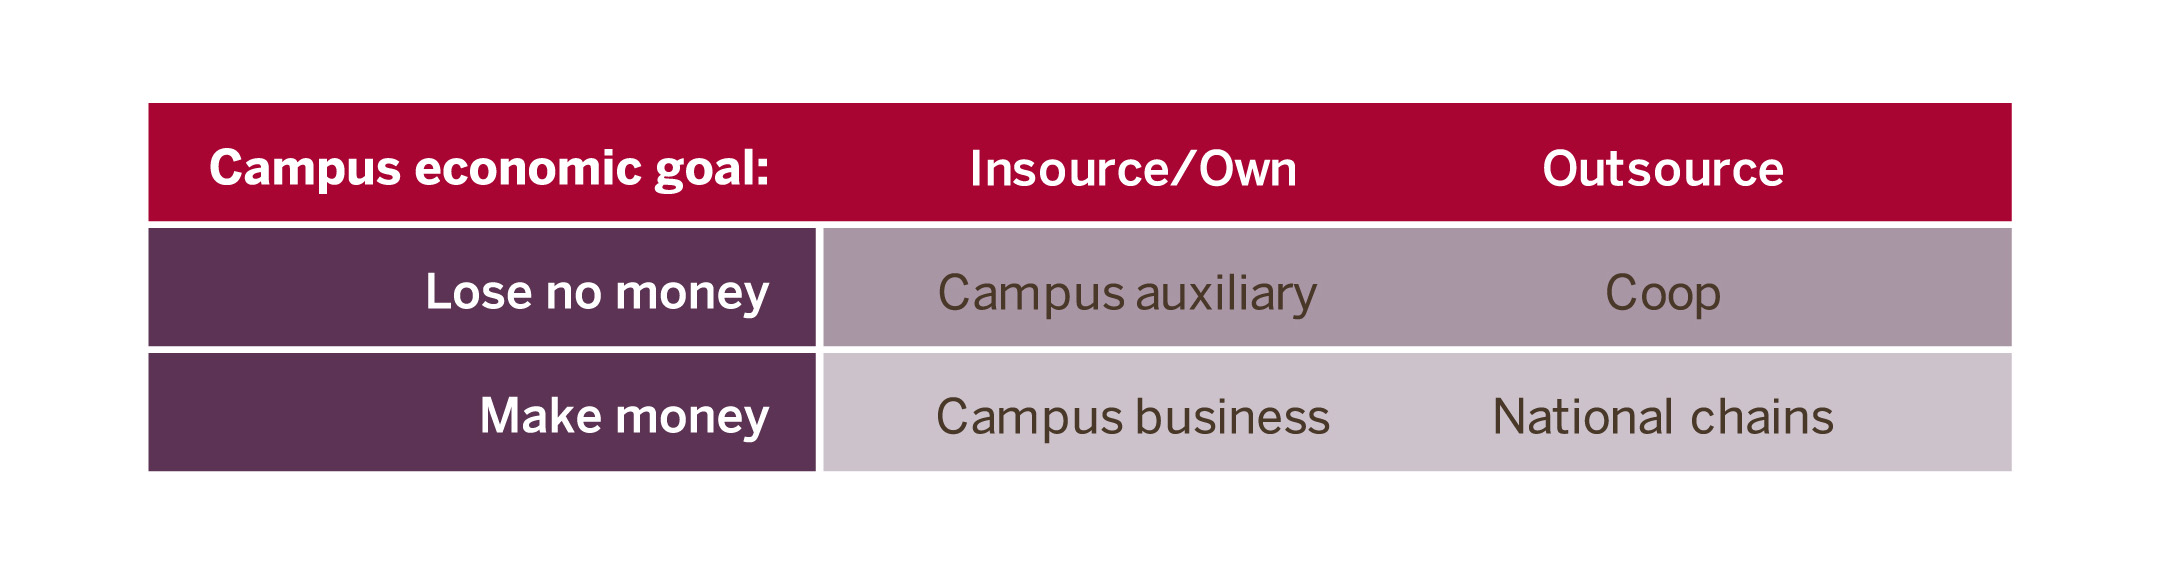 a matrix to illustrate the monetary institutional goals with the sourcing approach of insourcing or outsourcing the physical campus bookstore